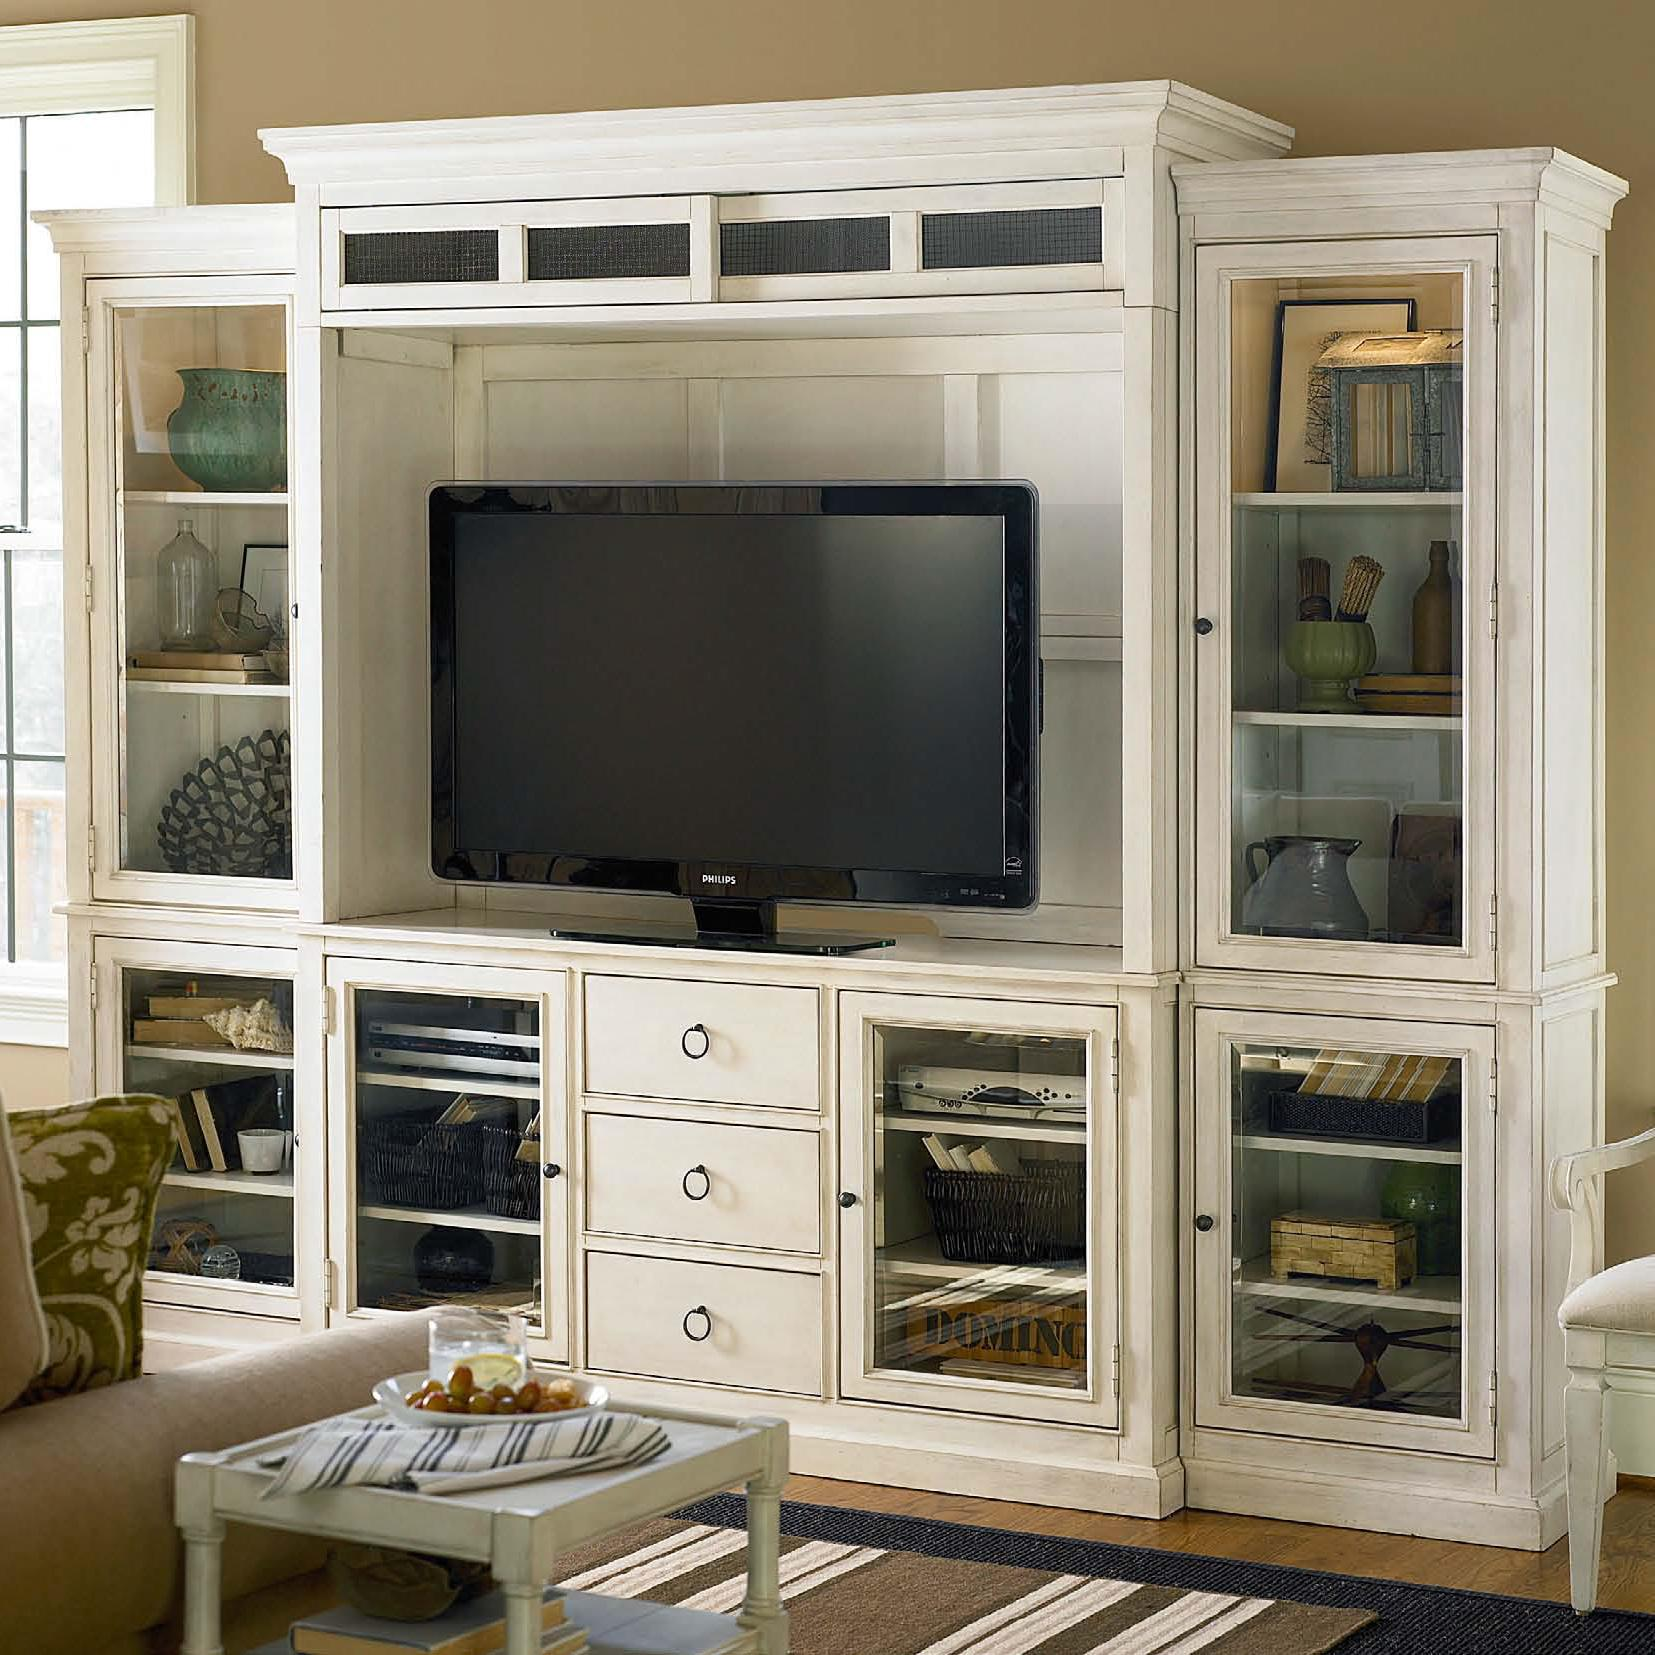 Rooms To Go Built In Entertainment Center